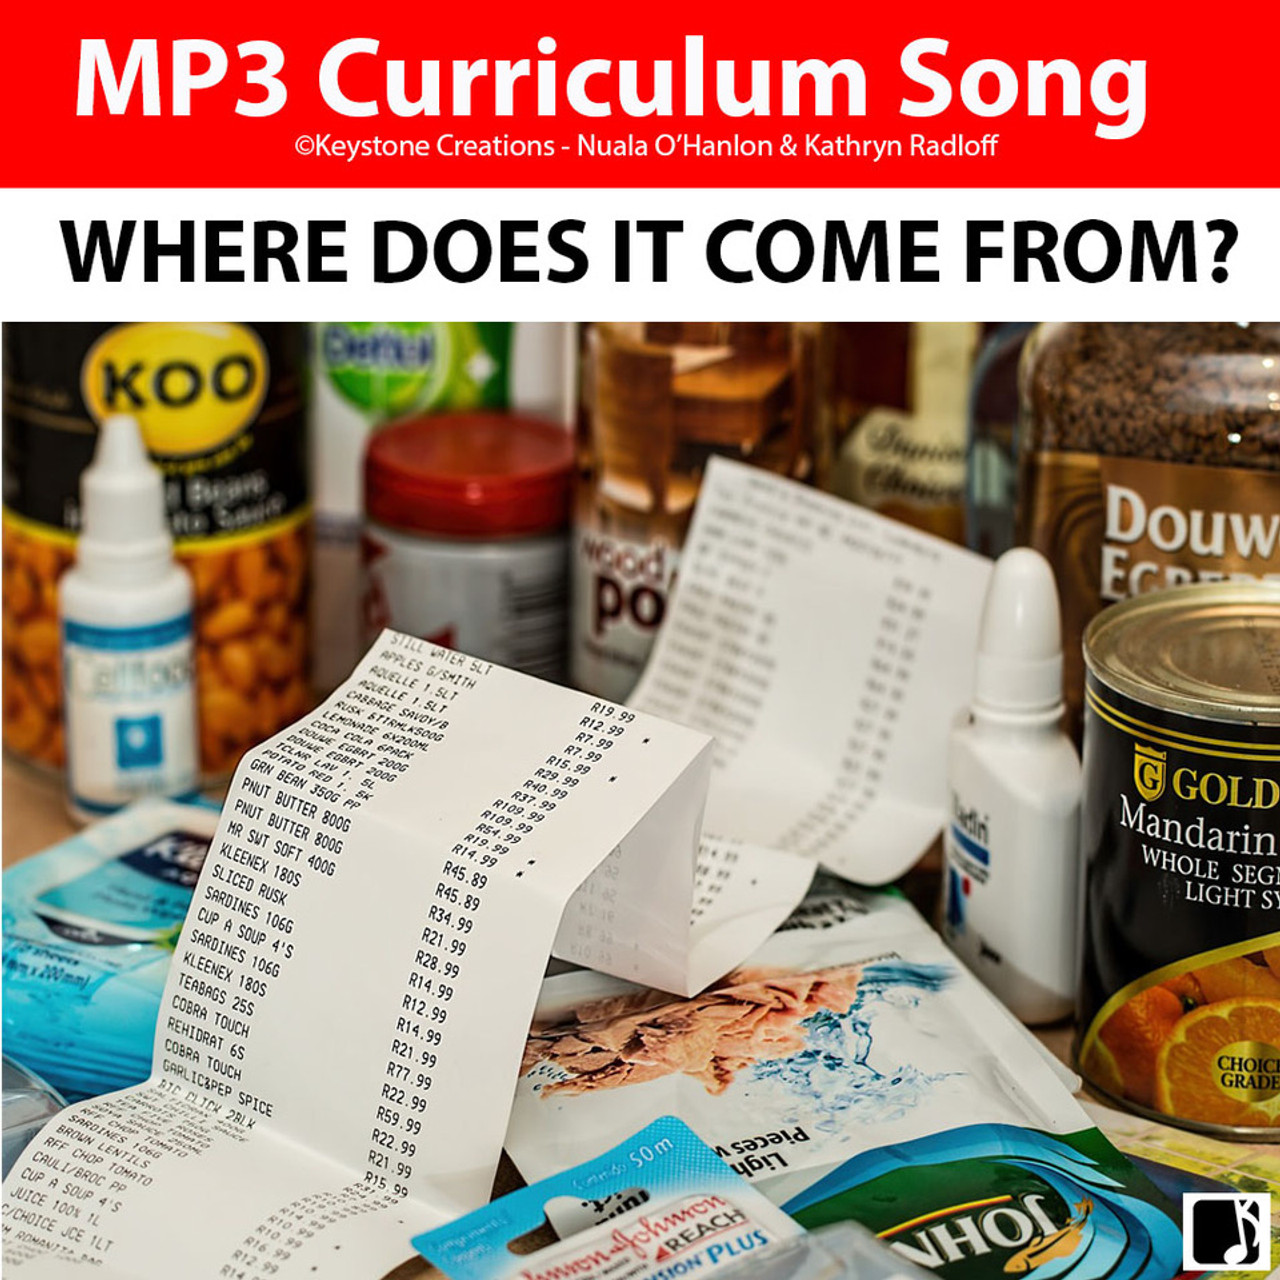 'WHERE DOES IT COME FROM?' ~ Curriculum Song & Lesson Materials